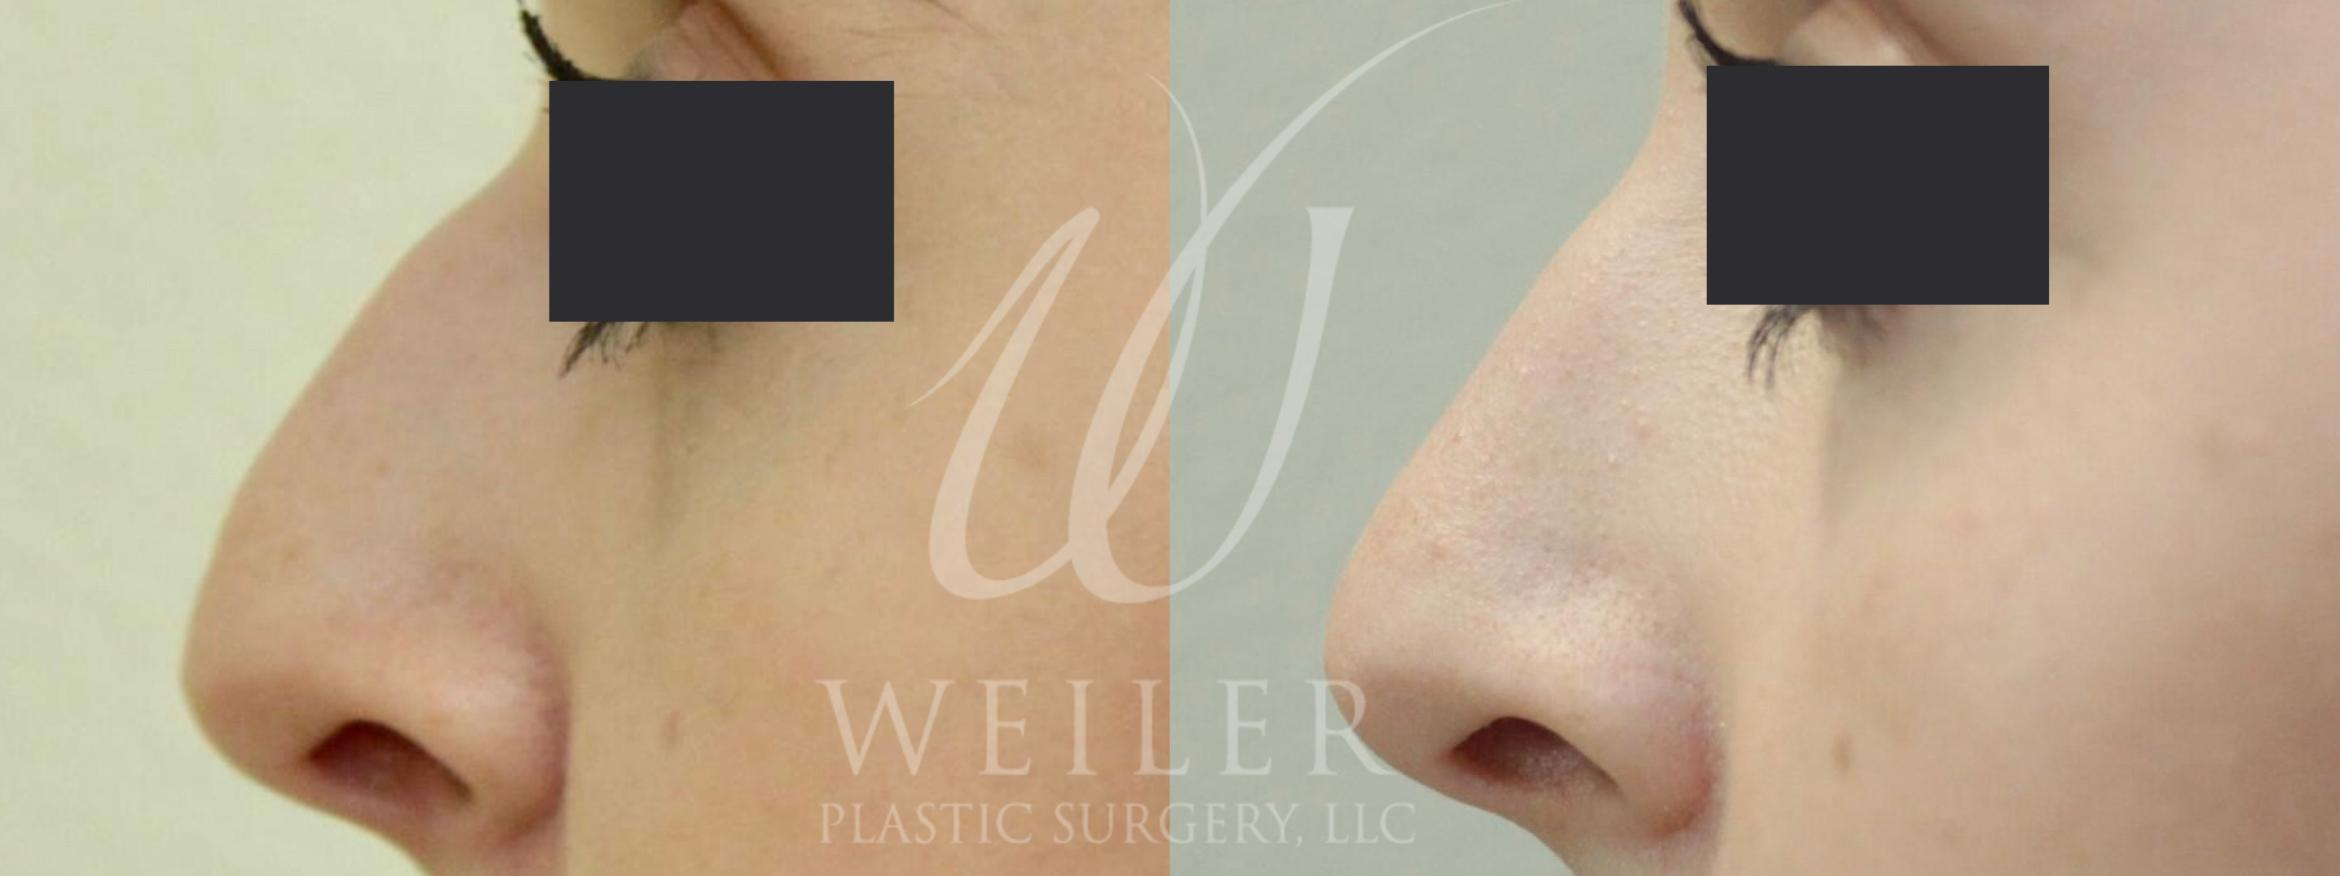 Liquid Rhinoplasty Before & After Photo | Baton Rouge, Louisiana | Weiler Plastic Surgery